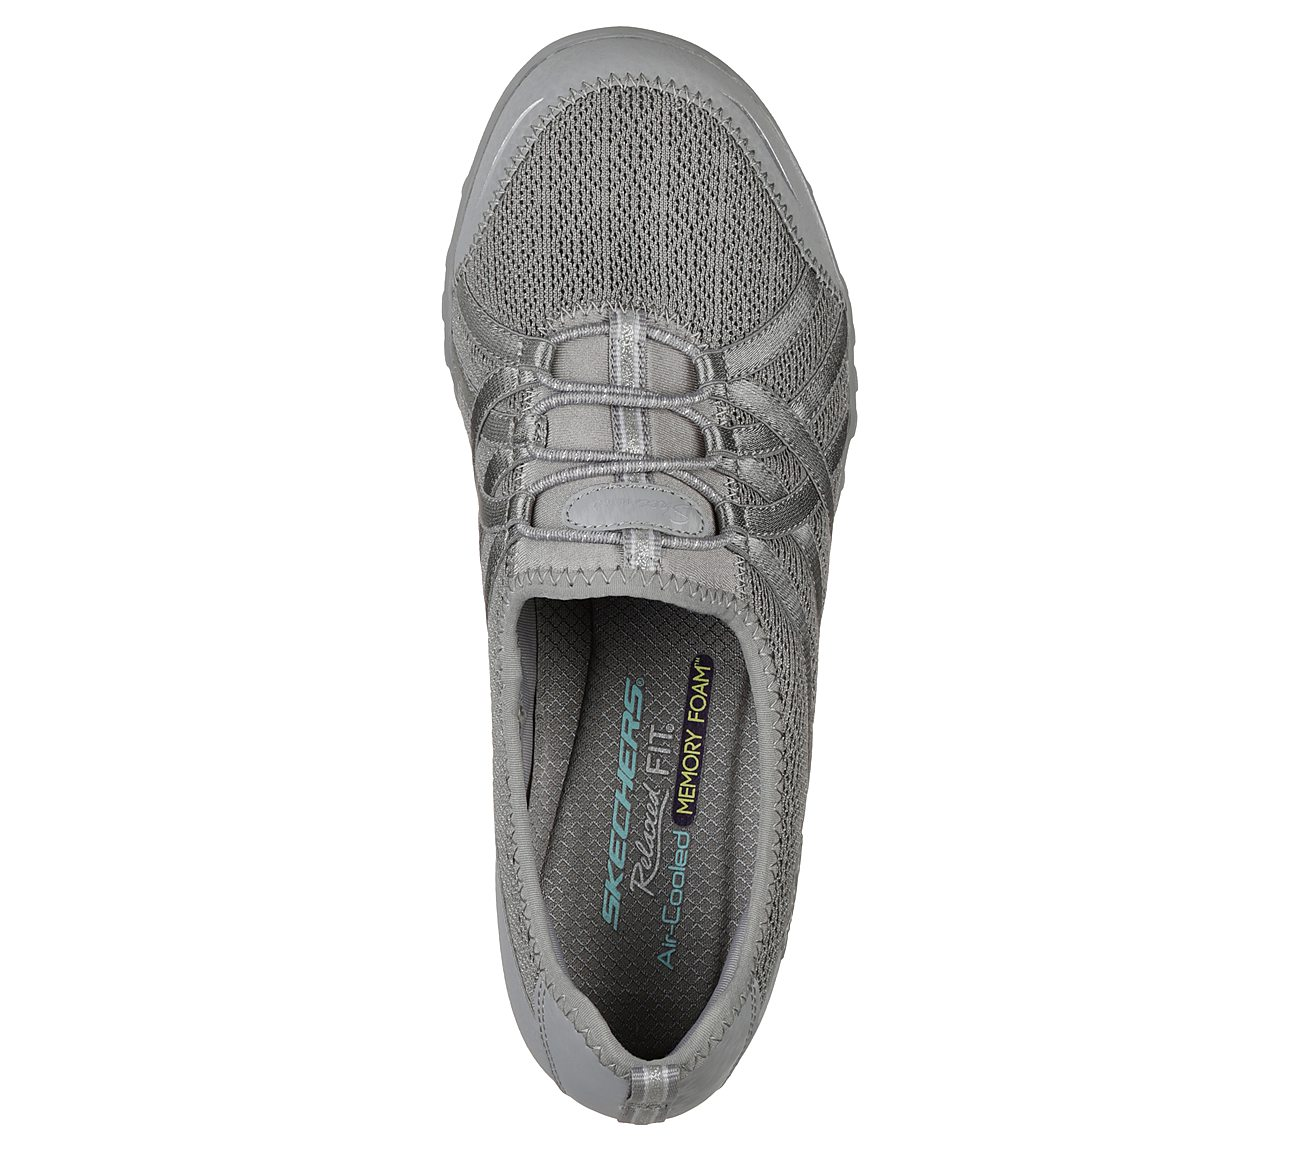 23826 Breath Easy Envy Taupe Sneakers Womens Shoes Casual Sneakers